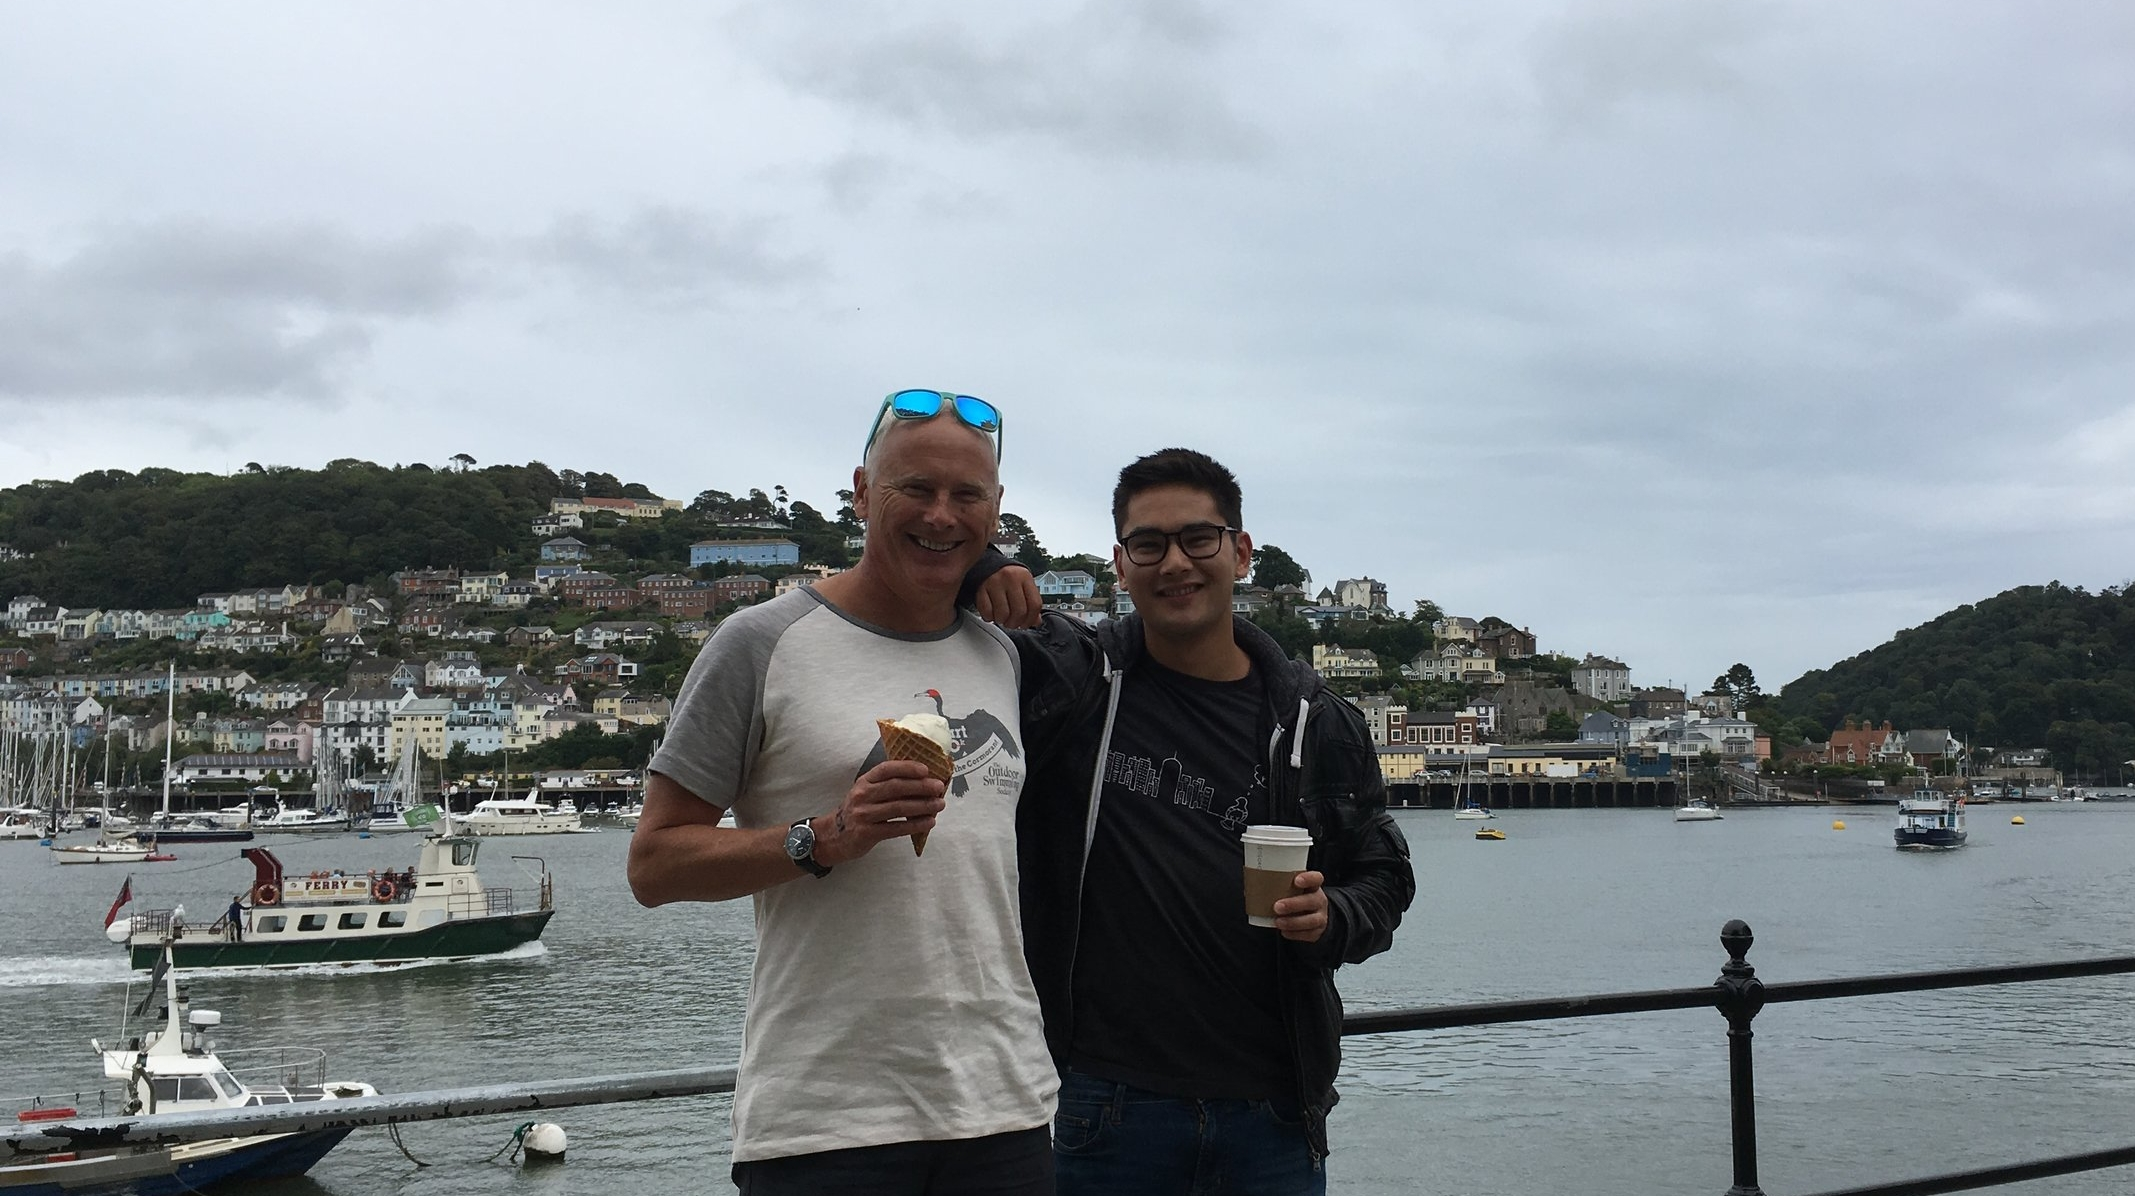 Post Dart 10k nutrition with my son - the big question is: will I top the experience and go for pistachio and hazelnut flavour next time?